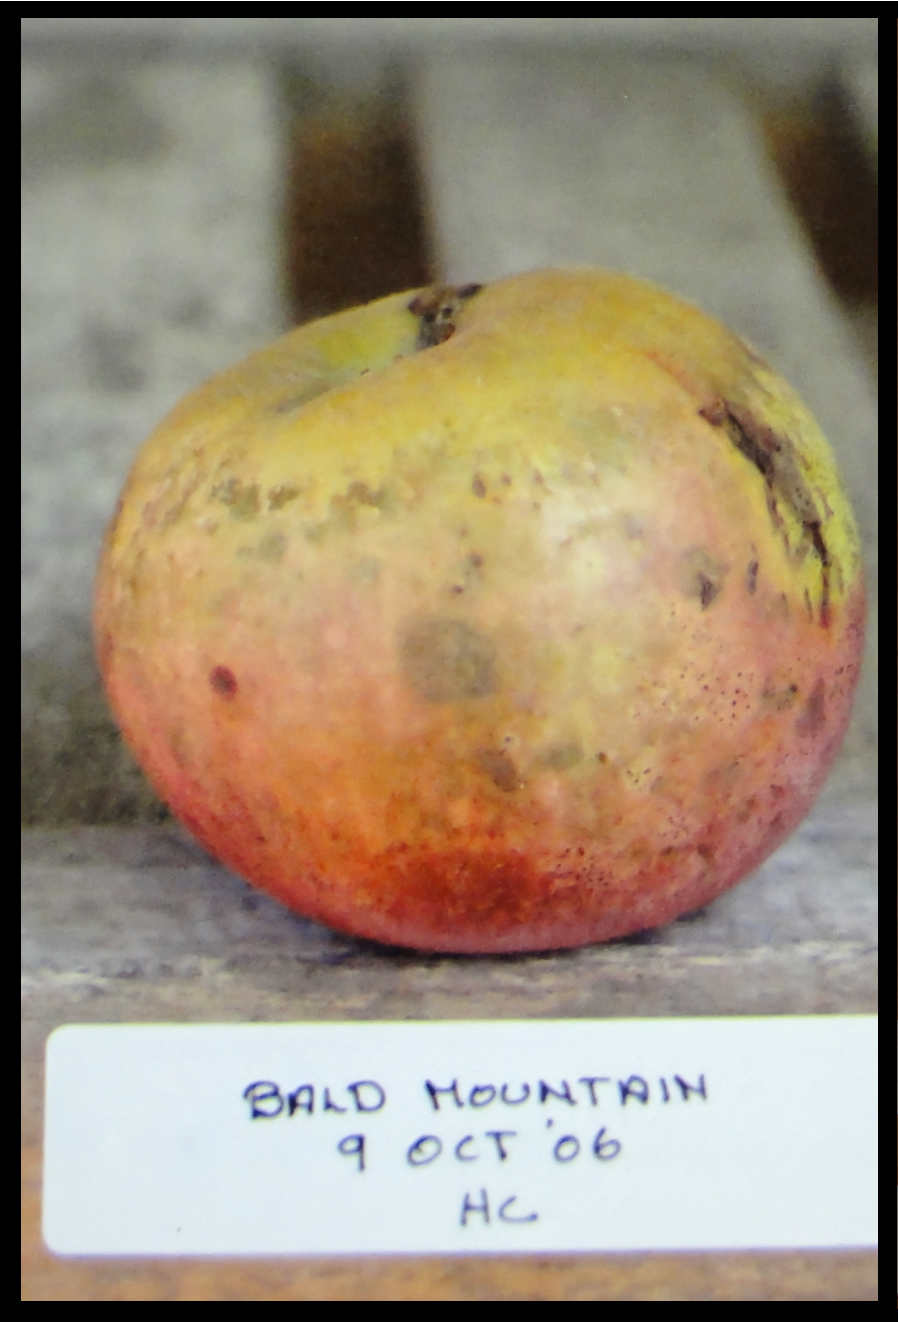 an apple that is yellowish tan on the top half and pinkish red on the bottom half